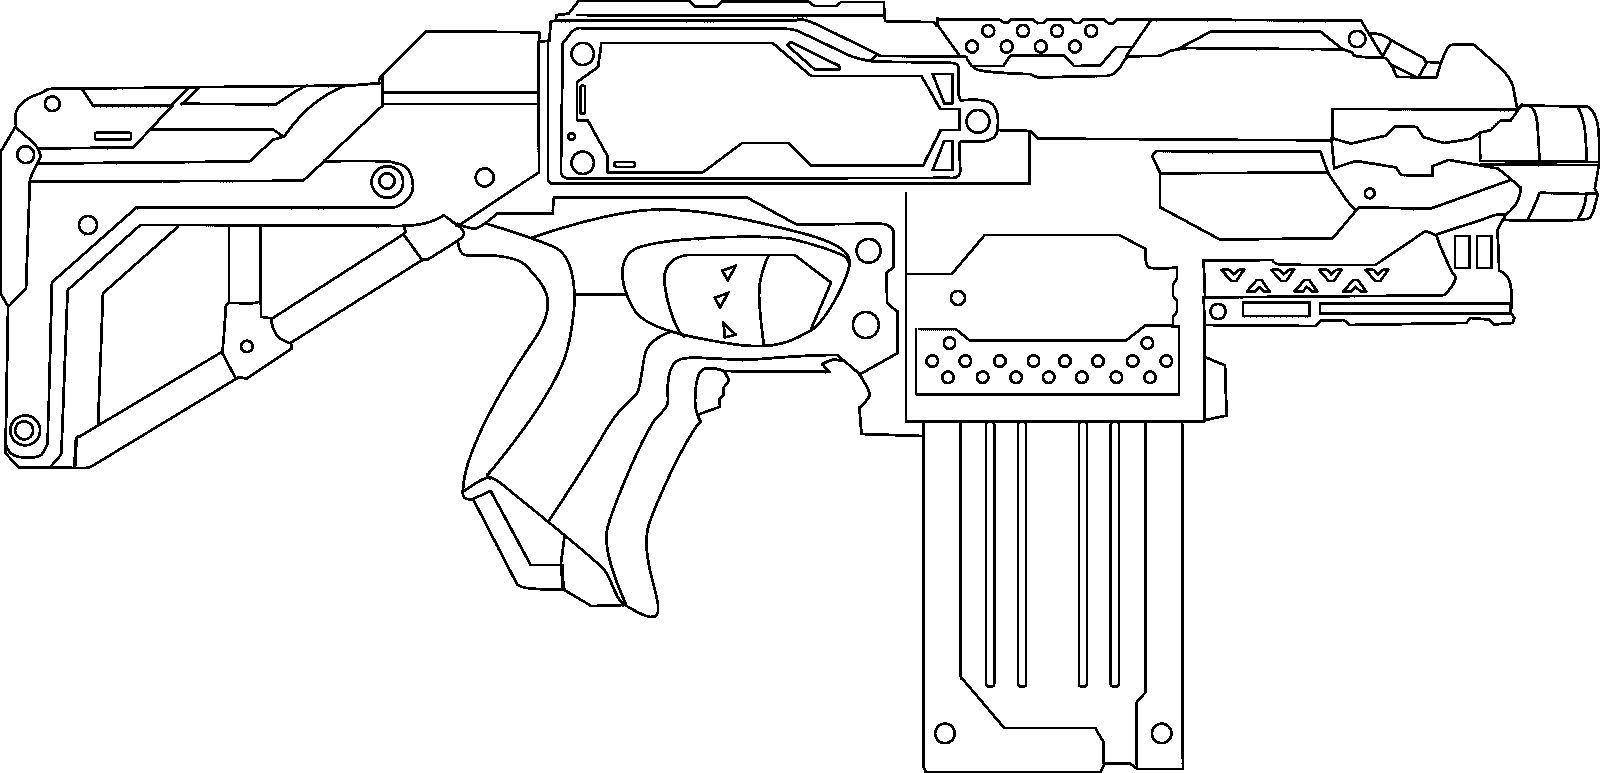 nerf gun coloring pages nerf gun coloring pages coloring home gun nerf coloring pages